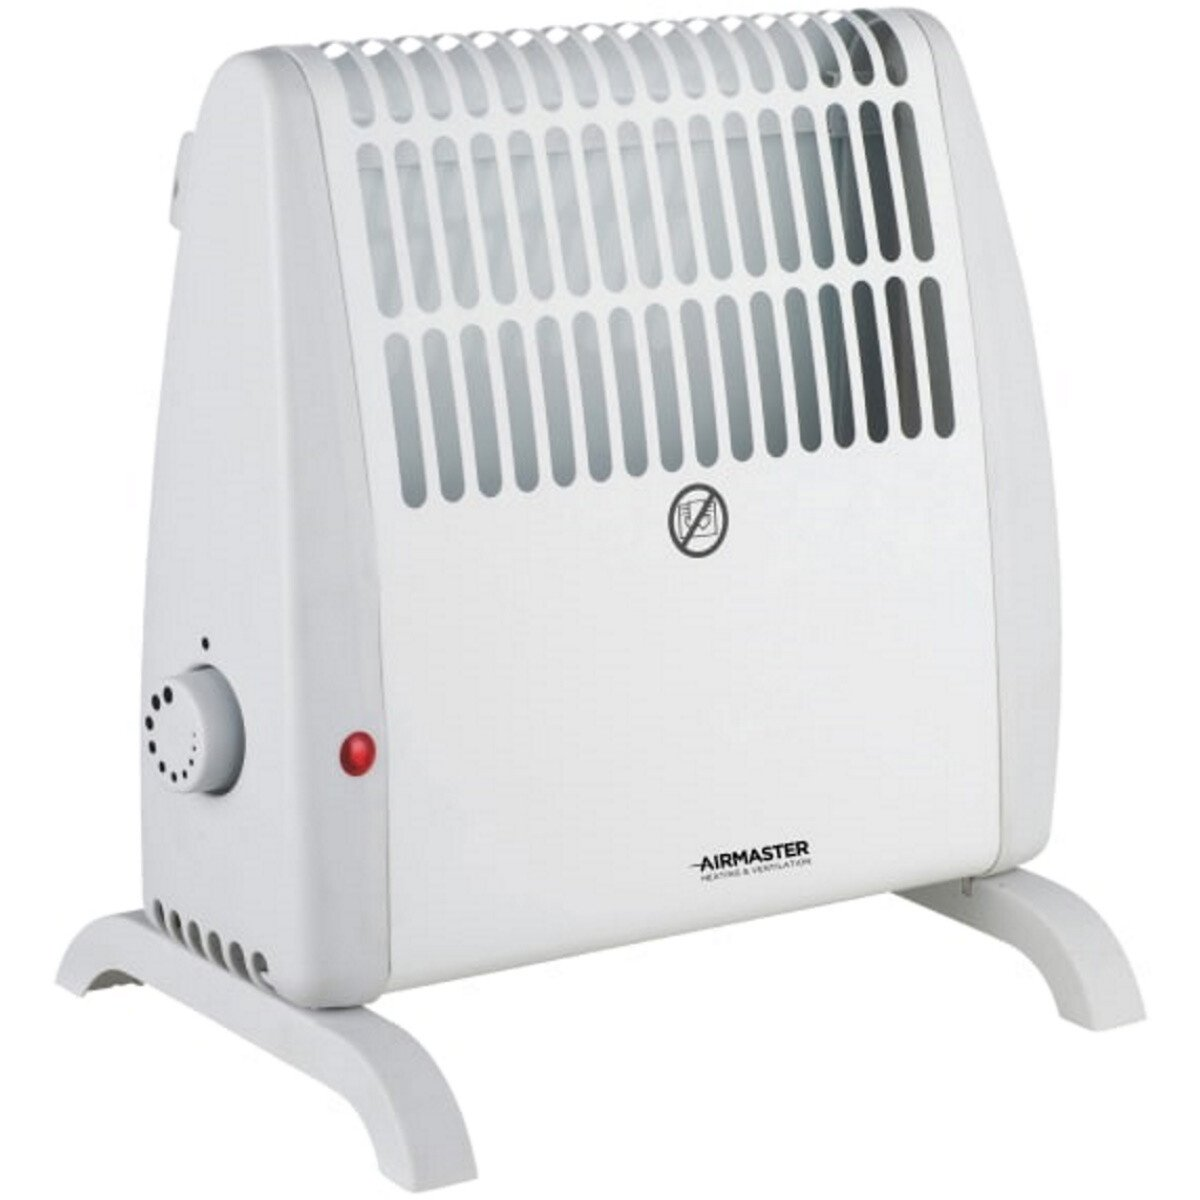 Airmaster FW400 Frost Watch Convector Heater 520W AIRFW400